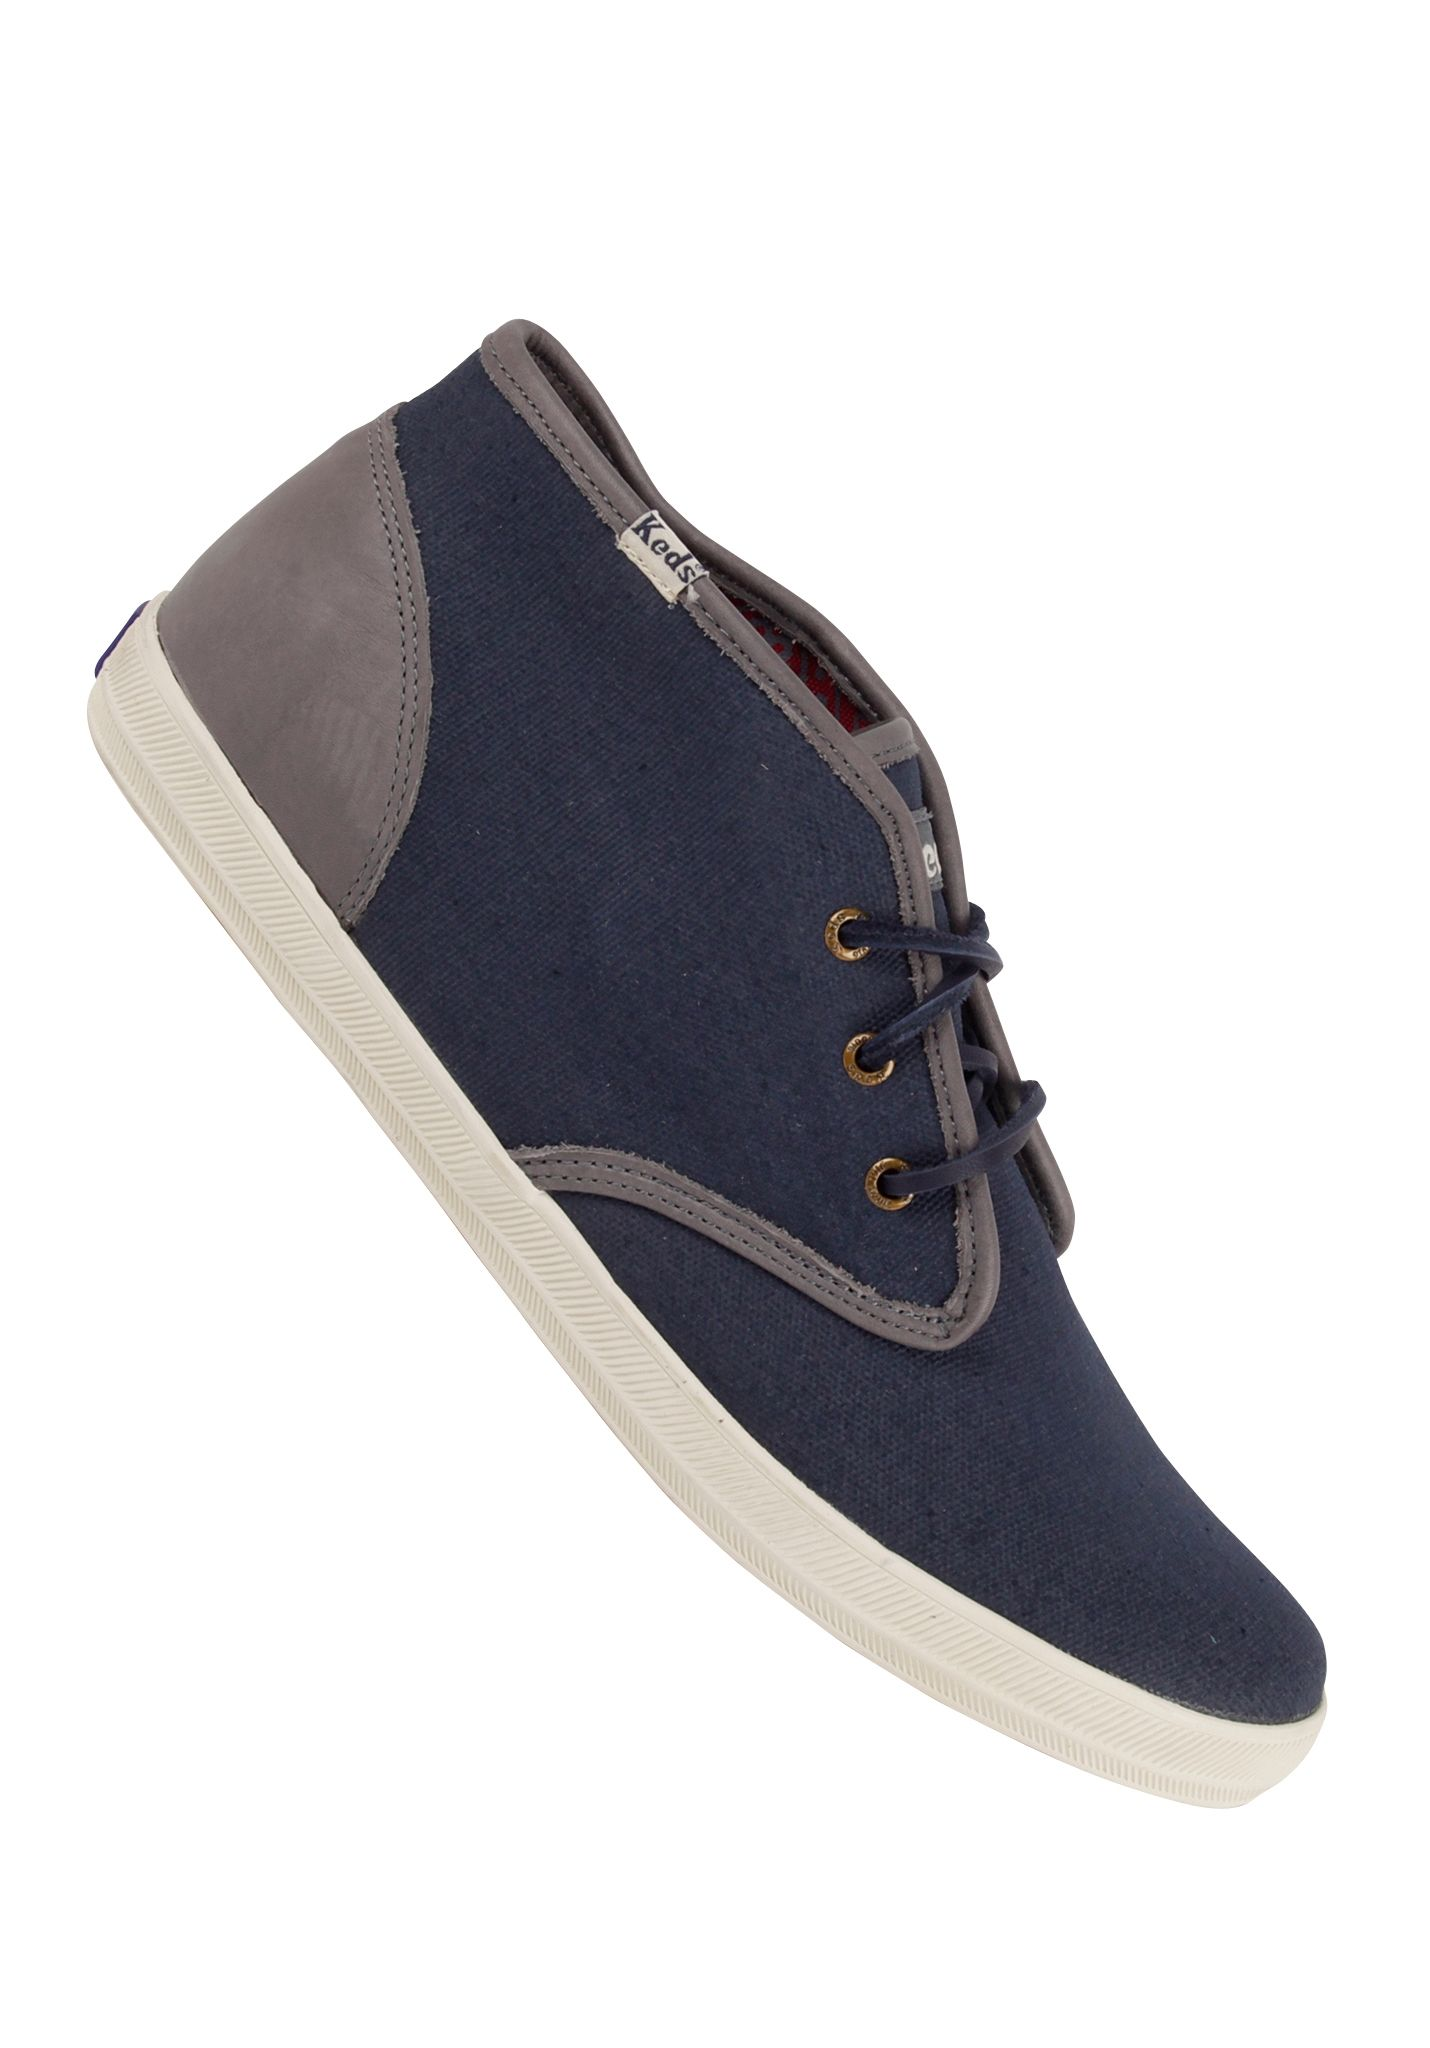 9e7046a29a4cd Keds Champion Chukka oiled Canvas navy - Boots for Men - Blue - Planet  Sports